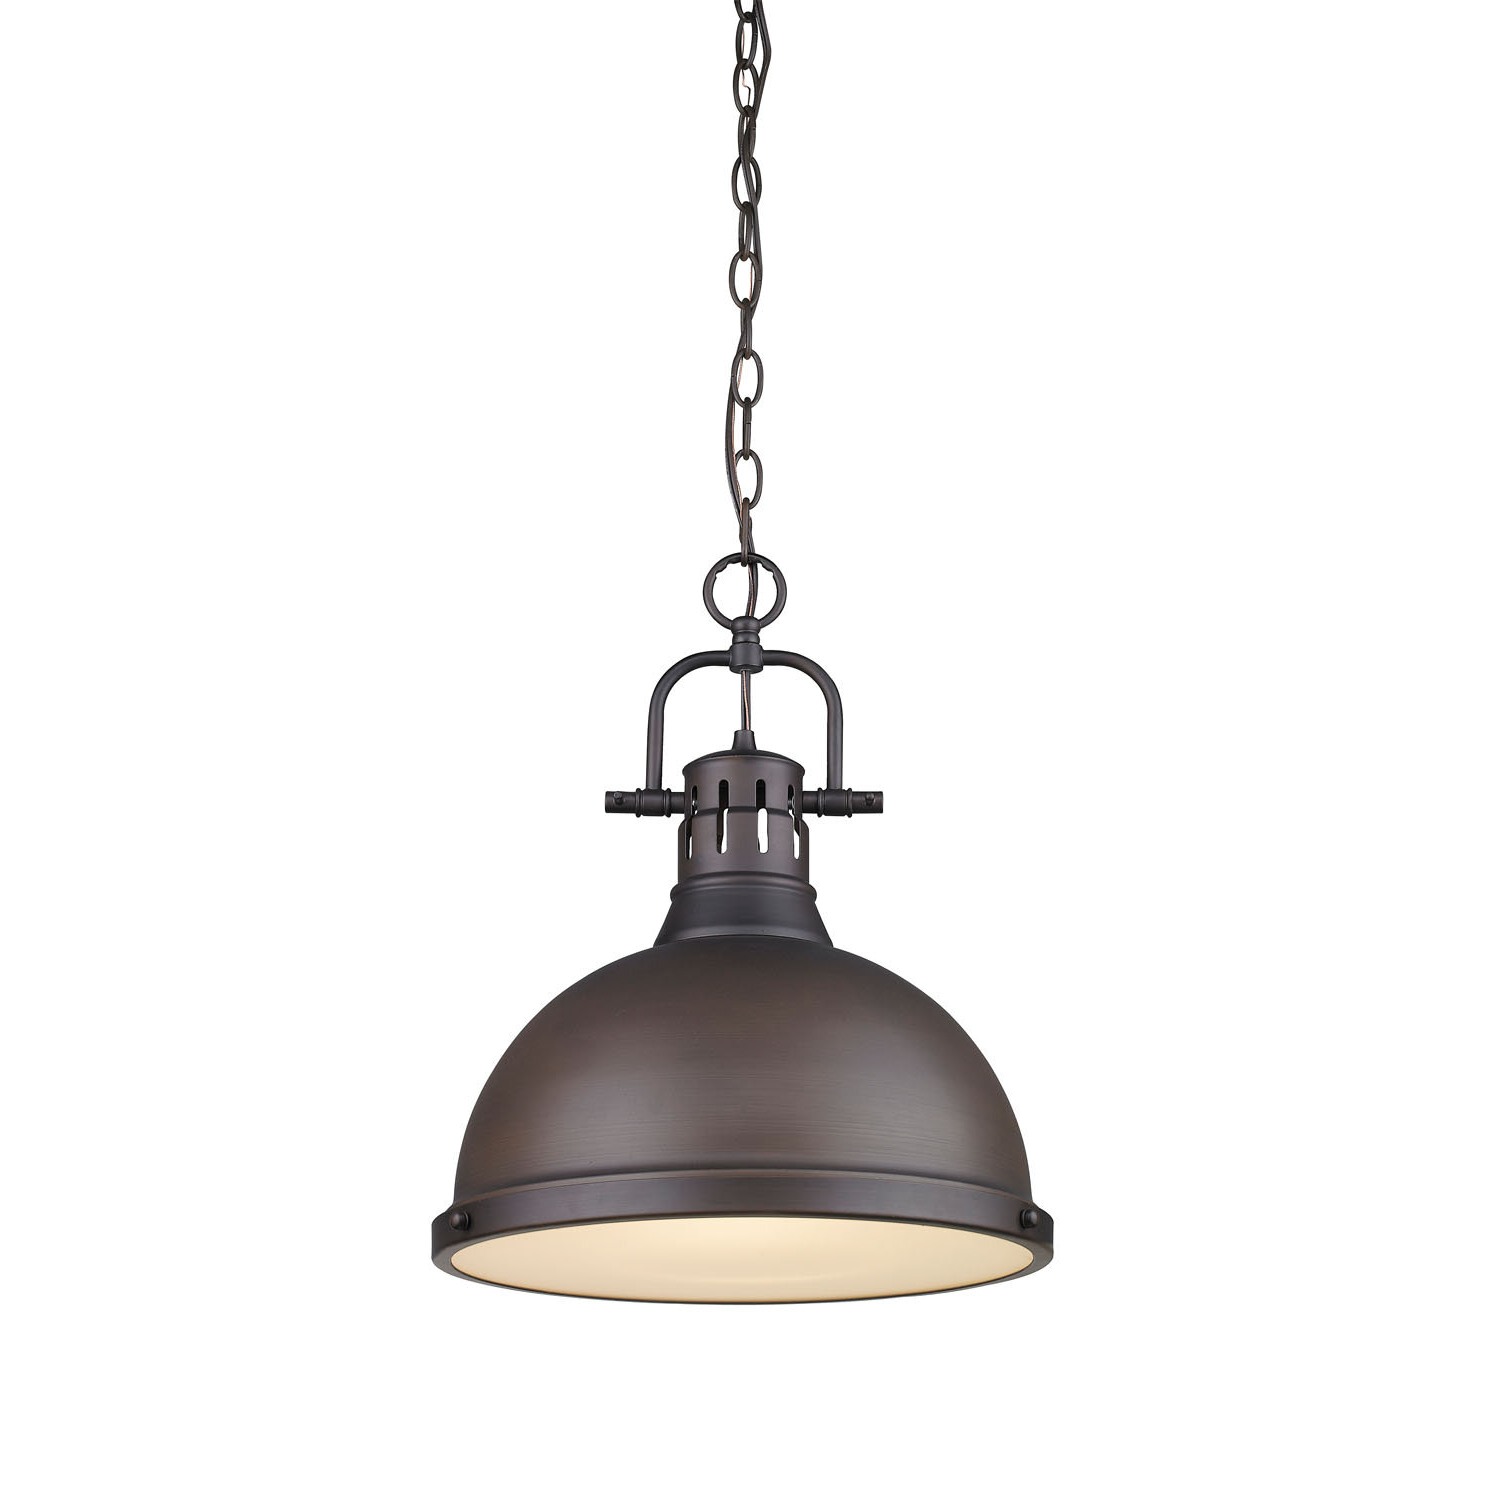 Amara 2 Light Dome Pendants Throughout Fashionable Bodalla 1 Light Dome Pendant (View 8 of 25)